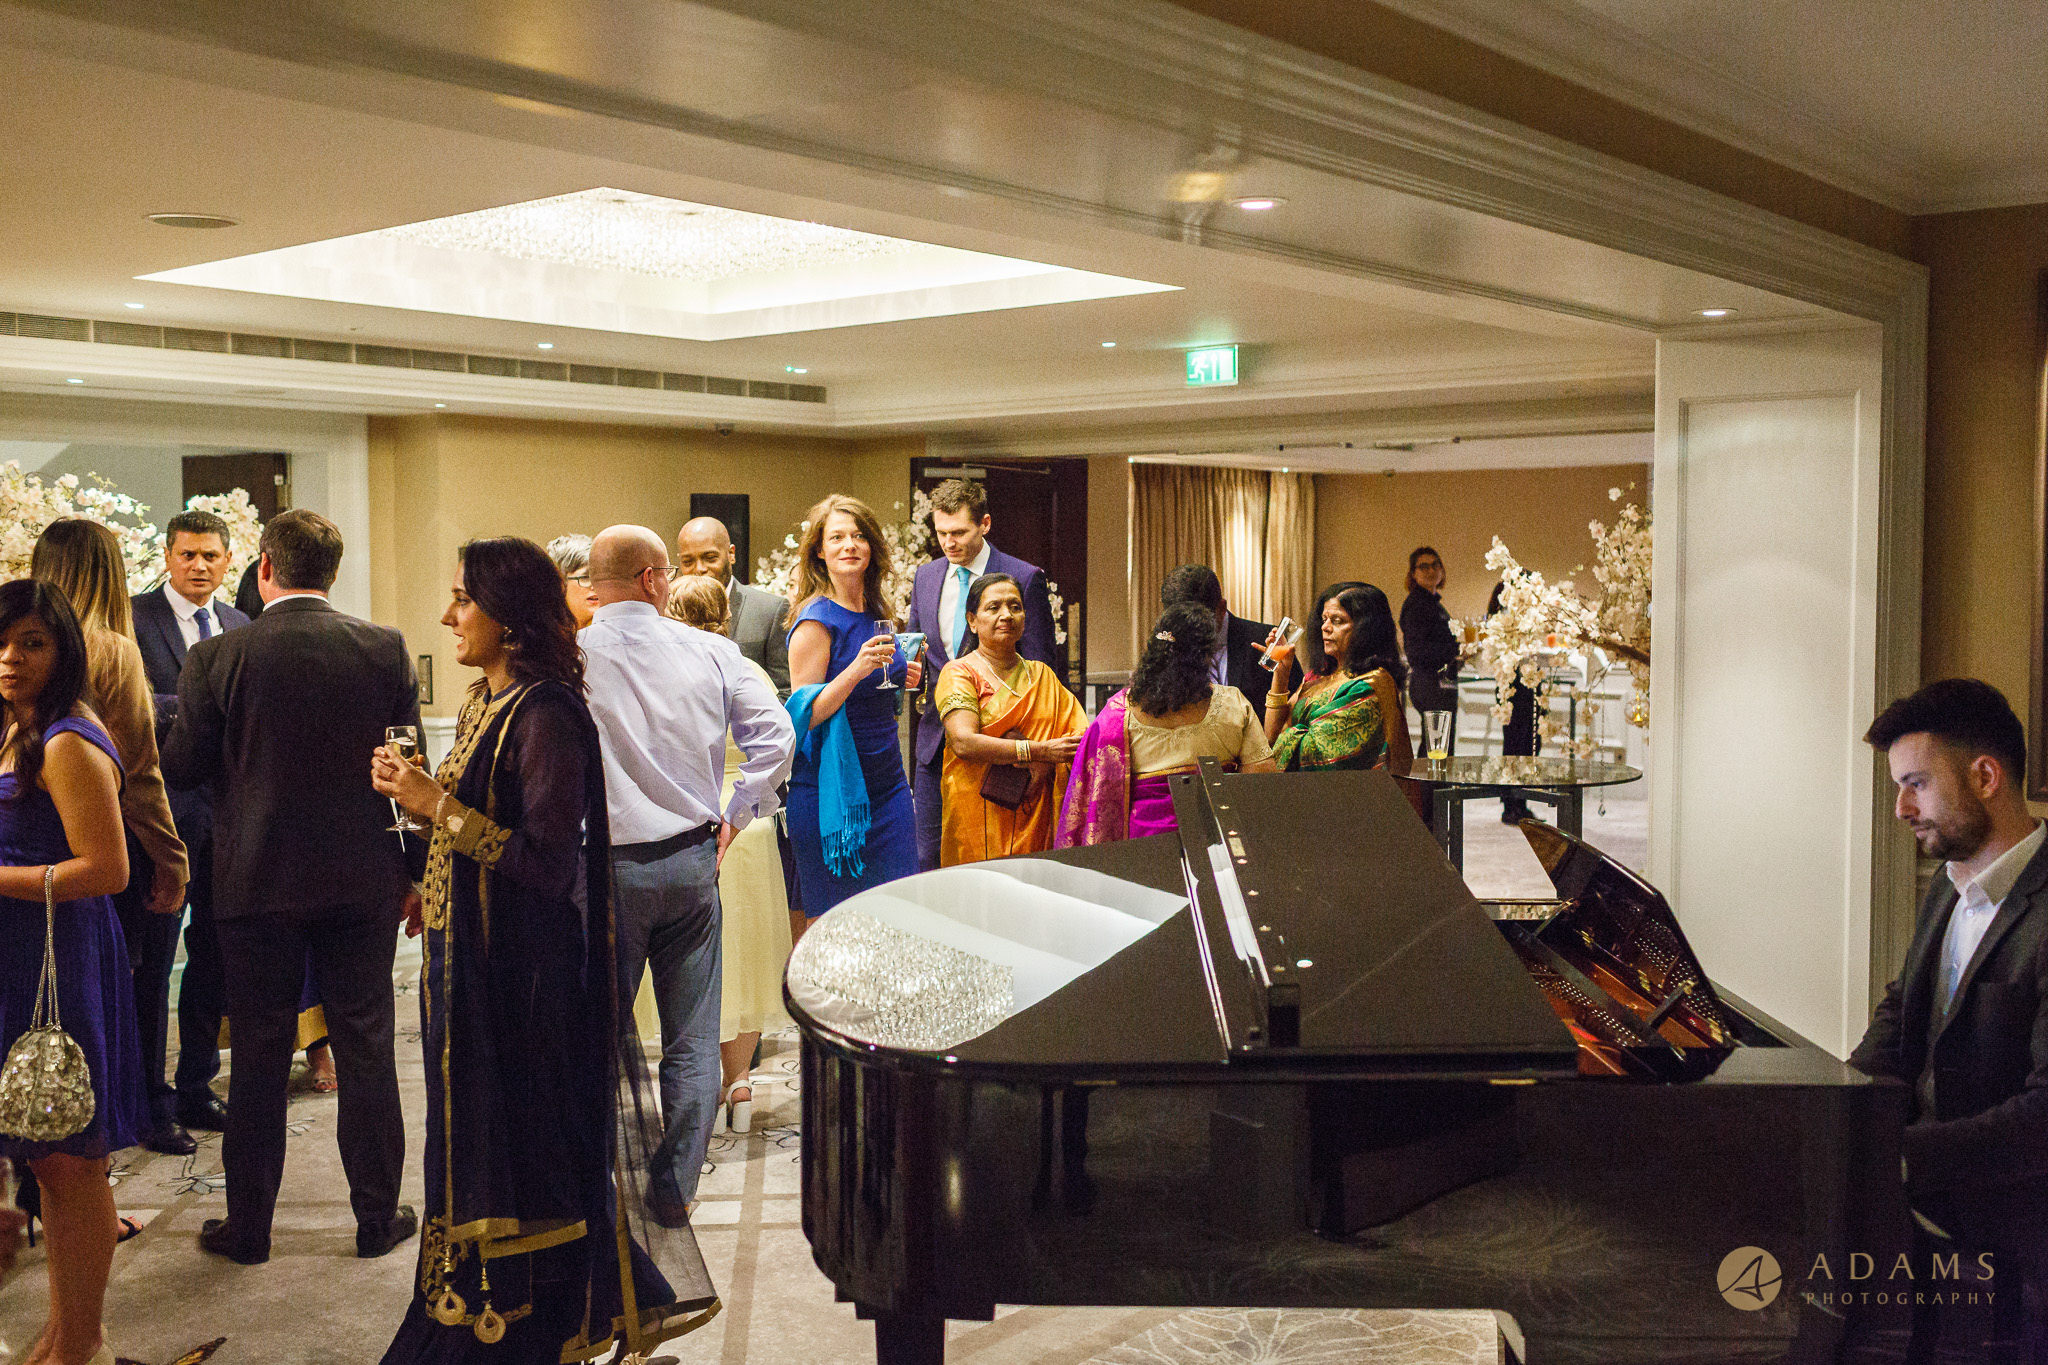 piona is playing at the wedding reception in Langham Hotel